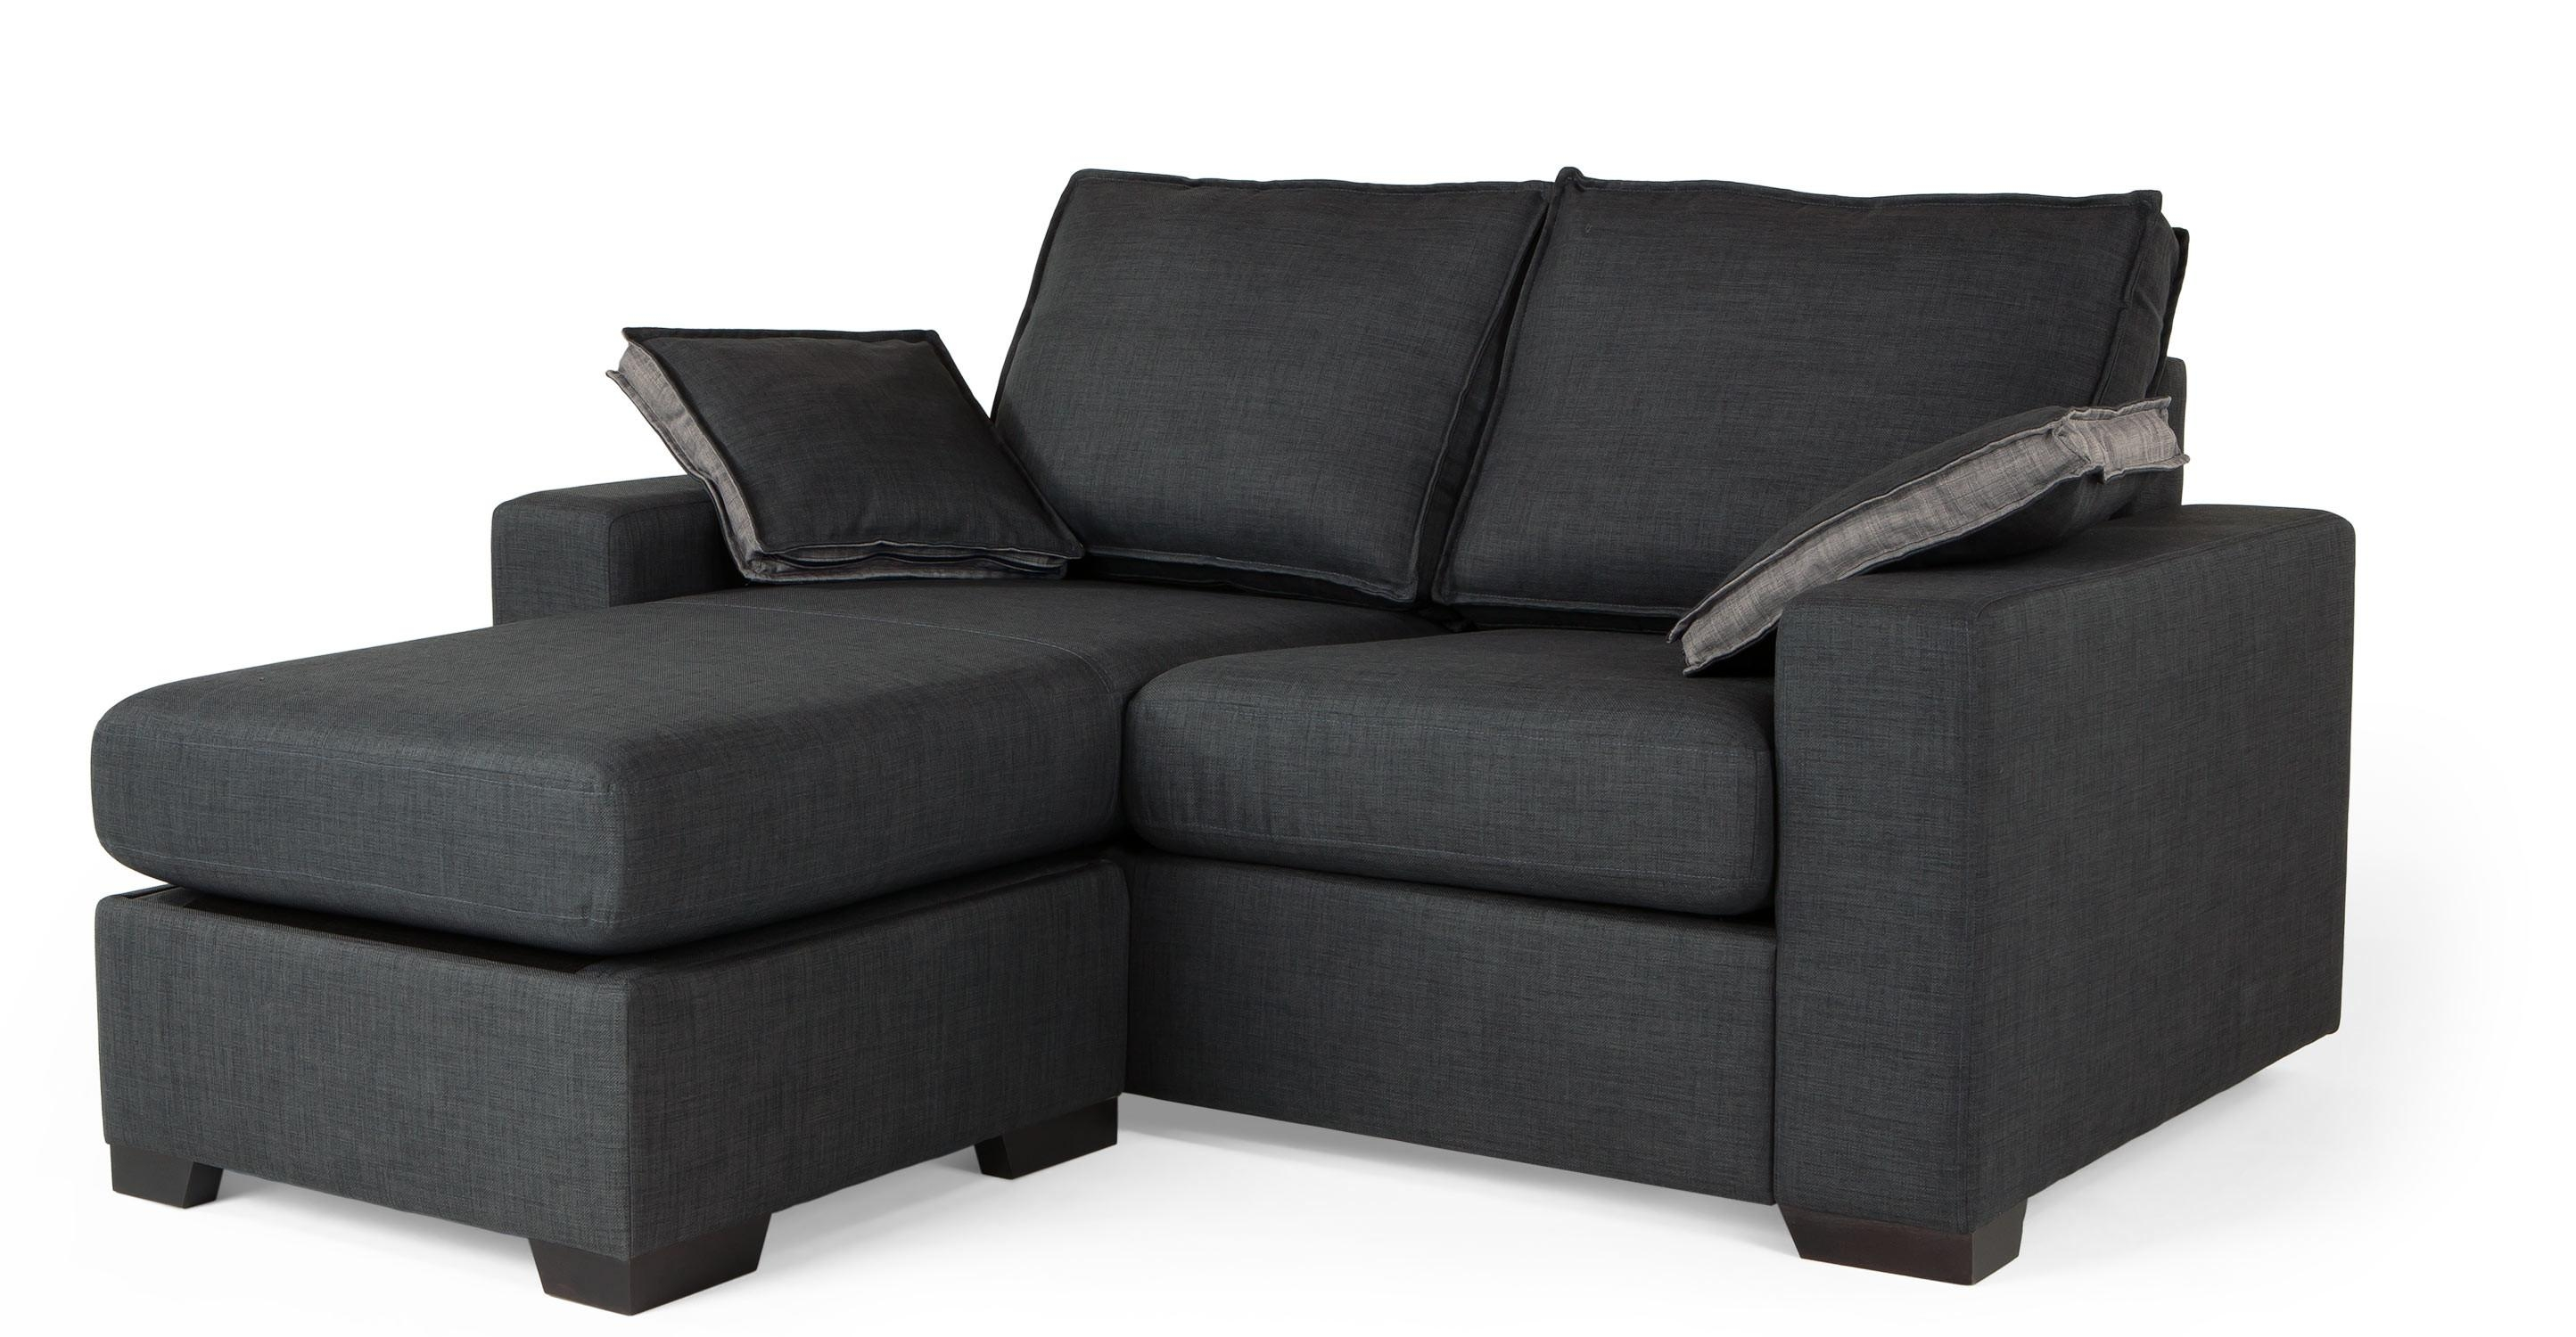 Sofas Center : Home Design Astonishing Small Sofa Beds Foracessace With Small Scale Sofa Bed (View 10 of 20)